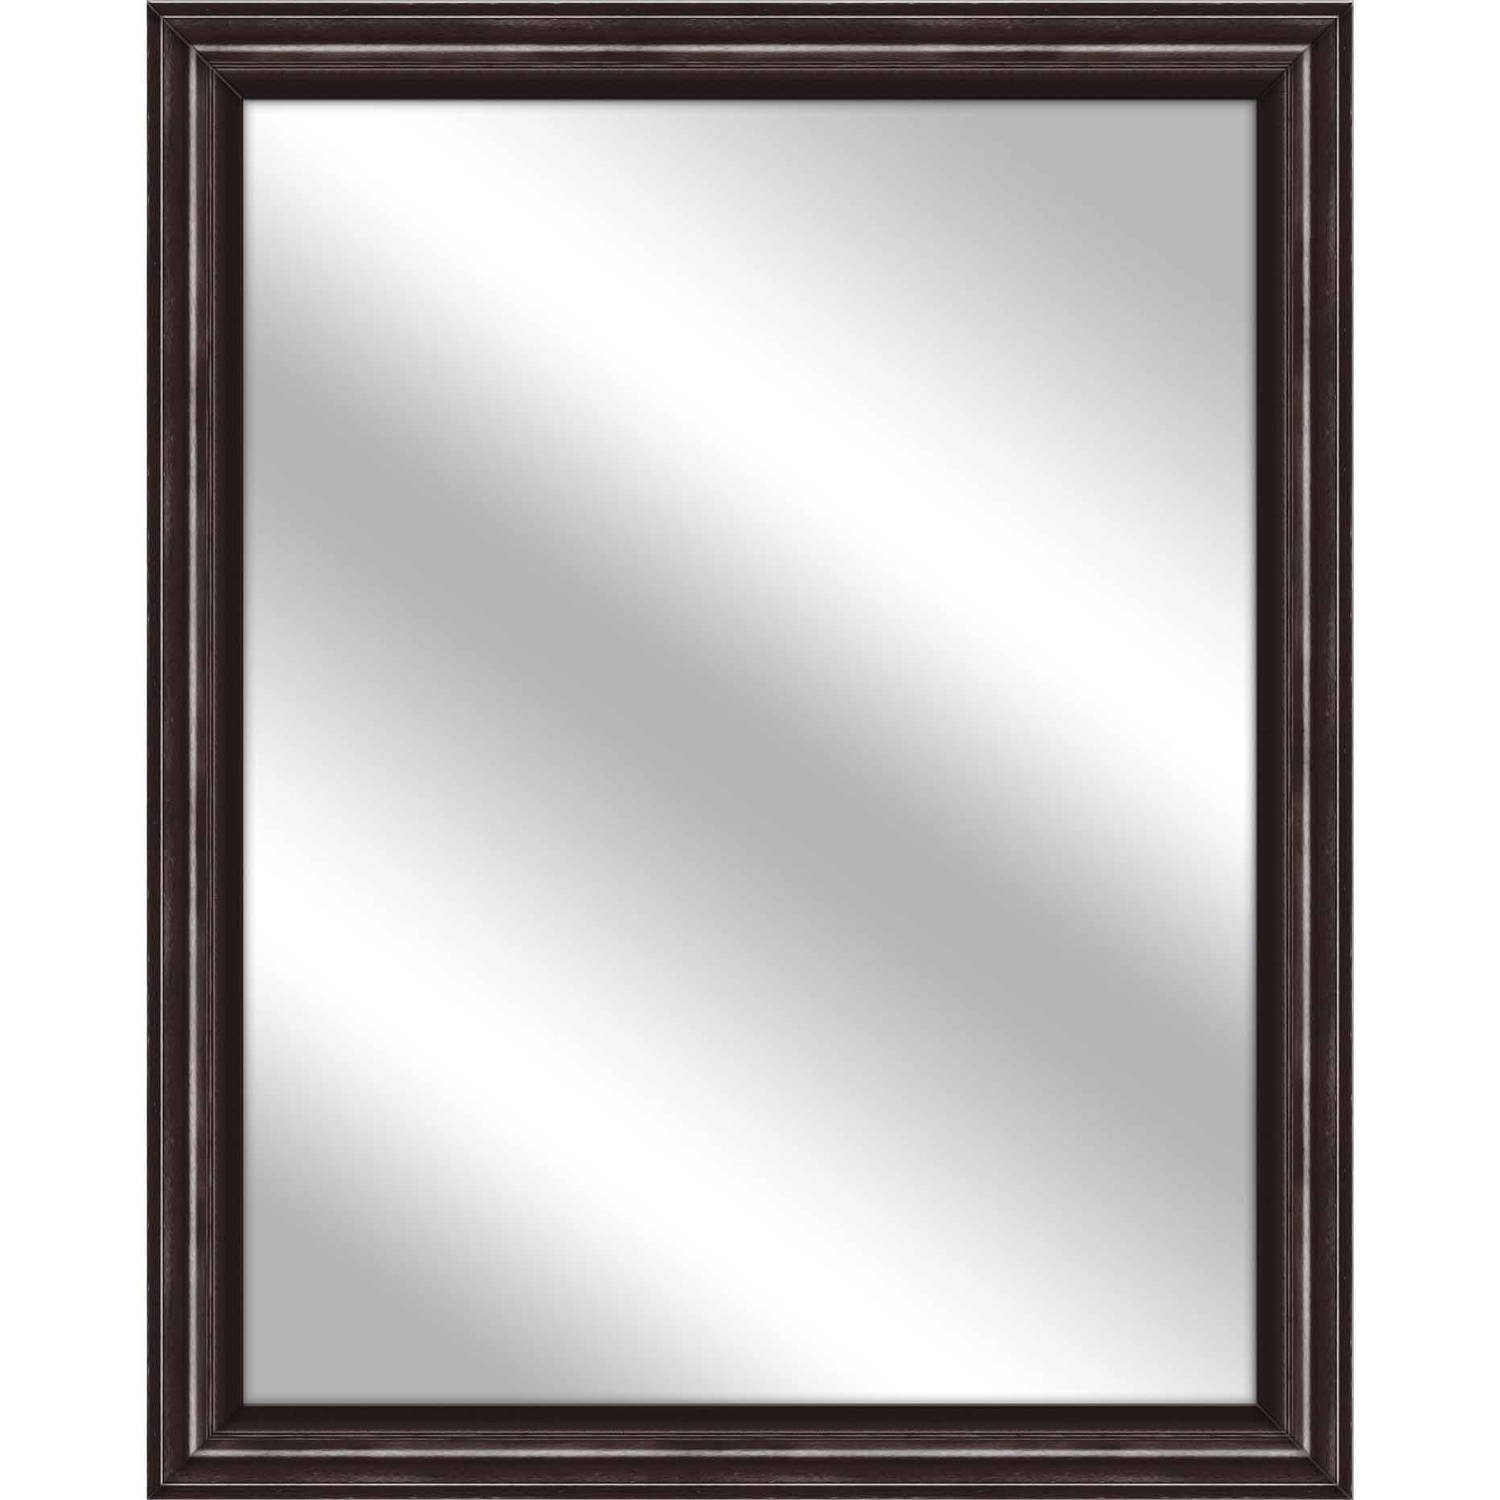 Vanity Mirror, Brown, 25x31 by PTM Images